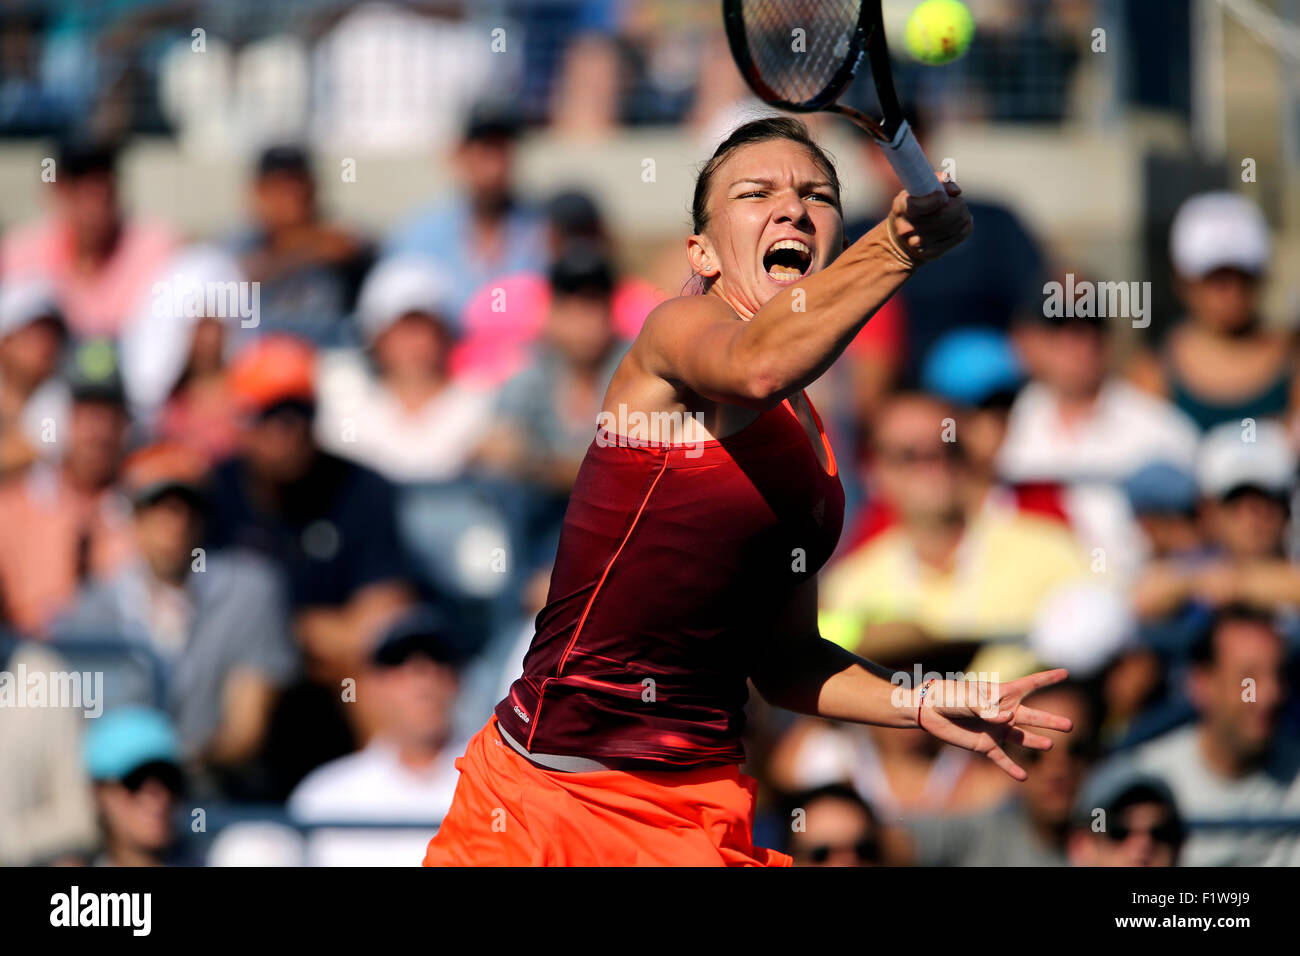 New York, USA. 7th September, 2015. Simona Halep, the number 2 seed from Romania, during her fourth round match - Stock Image